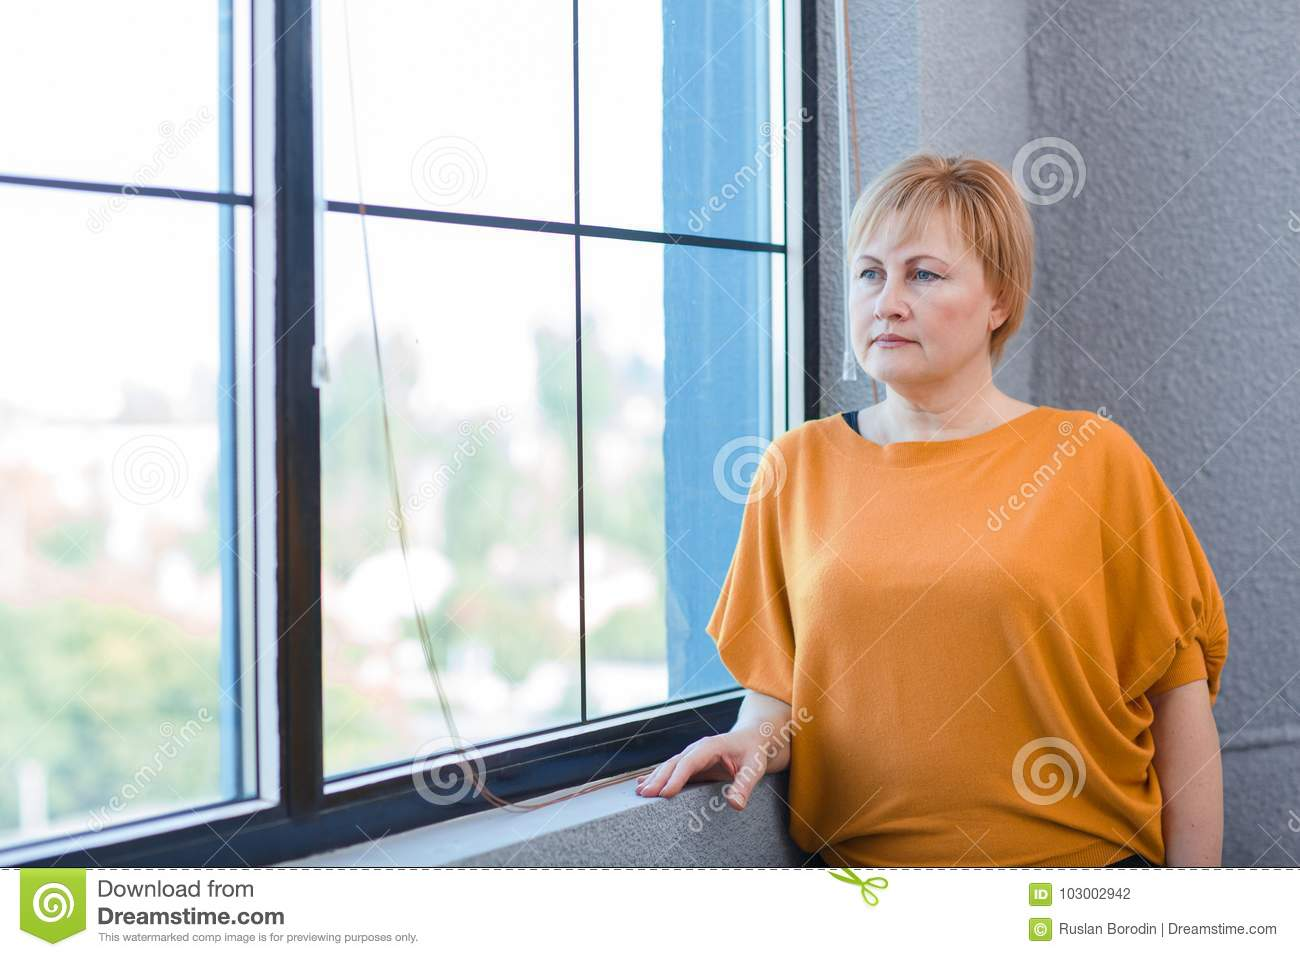 Mature woman in a yellow blouse looks out the window.